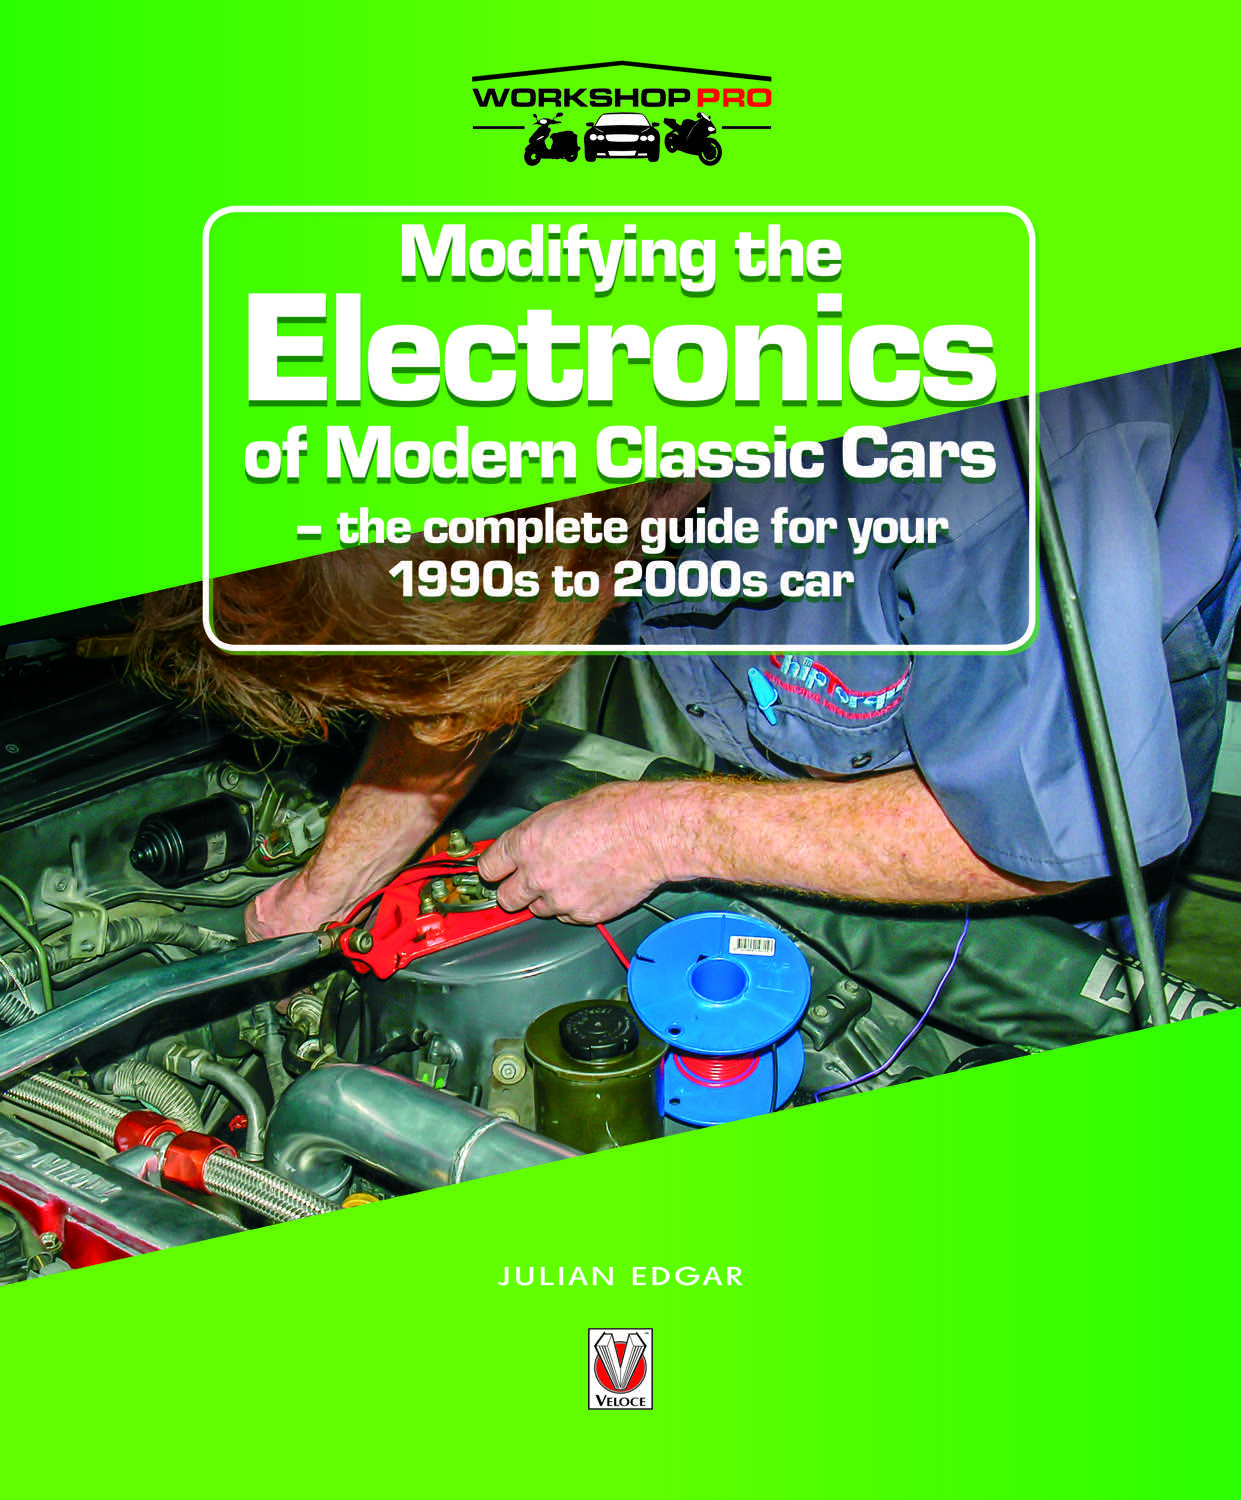 Modifying the Electronics of Modern Classic Cars – the complete guide for your 1990s to 2000s car cover